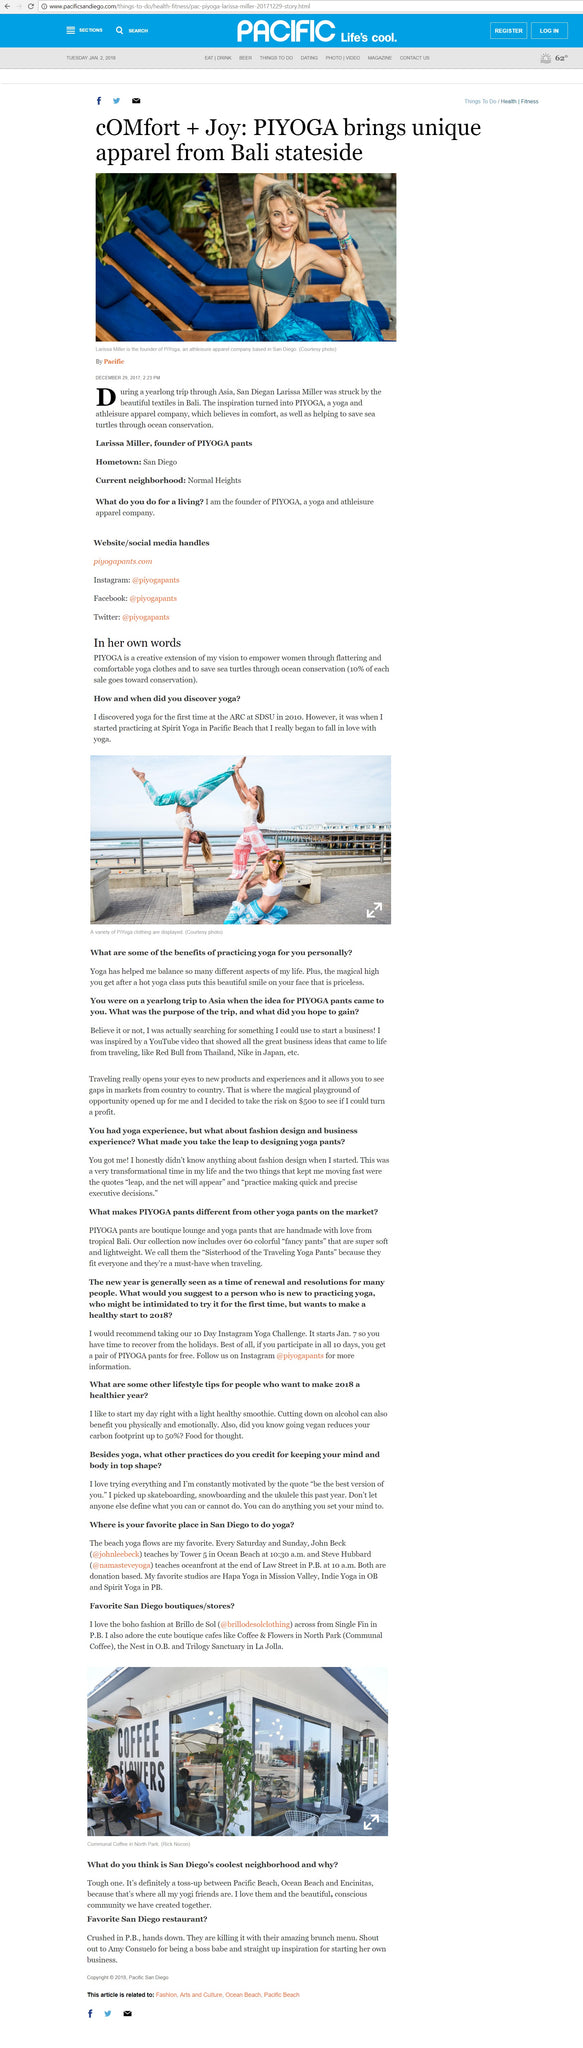 PIYOGA was featured in PACIFIC Magazine, San Diego's best magazine in the 92109